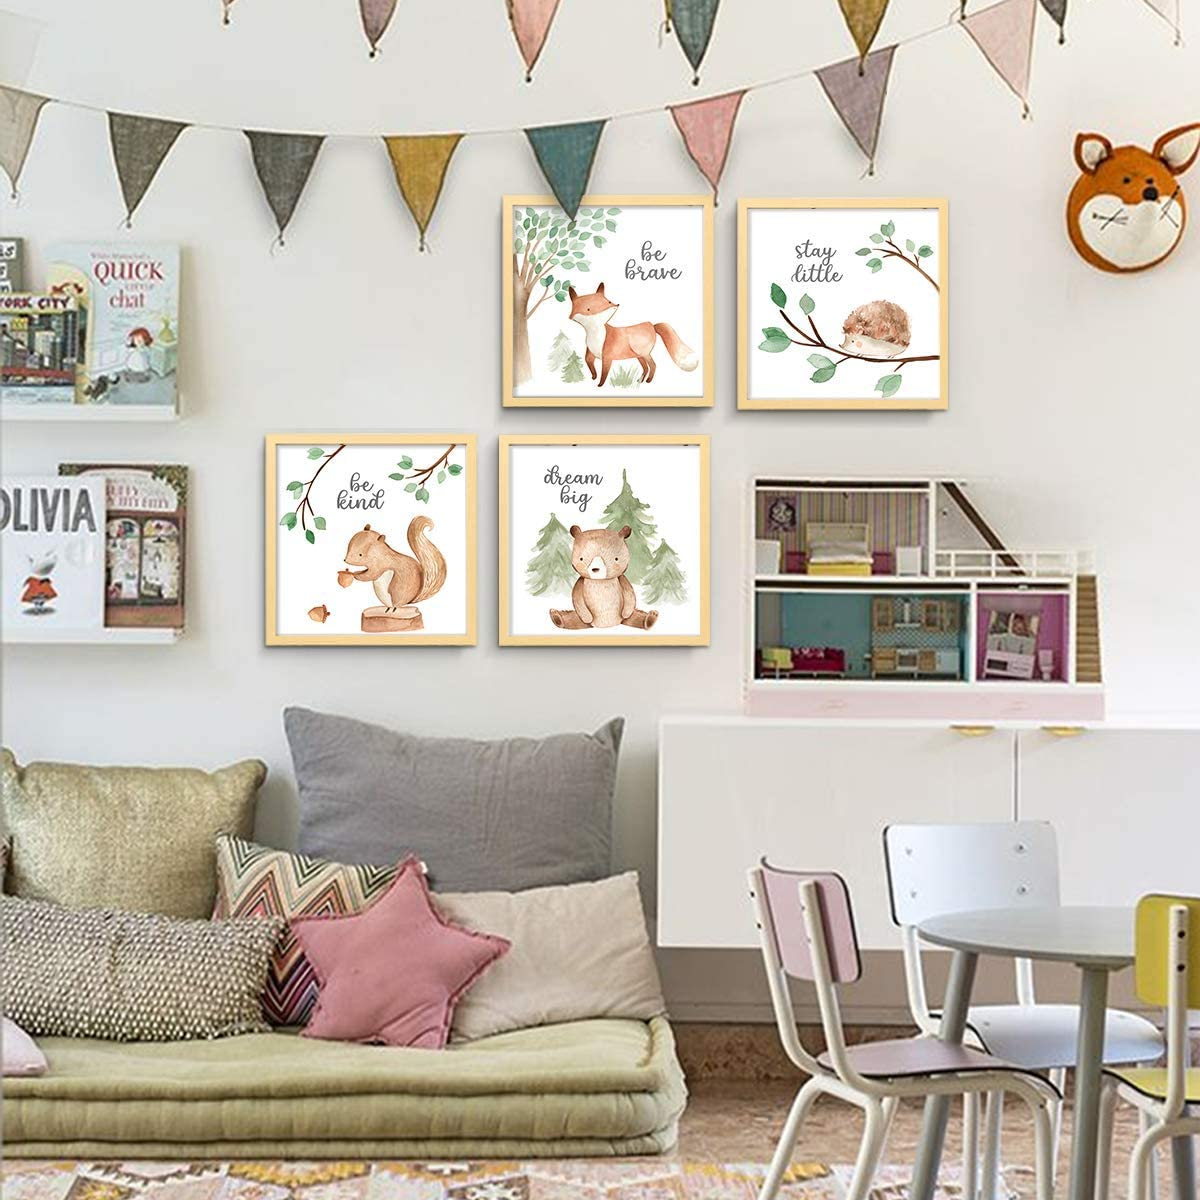 Artwork Paintings Set for Kids Room Playroom Bedroom 4 Pcs Woodland Nursery Wall Decor with Squirrel Forest Animals Kids Room Decor 12x12 Inch Frame set ArtbyHannah Picture Framed Nursery Wall Art decor Home Wall Hanging Decoration